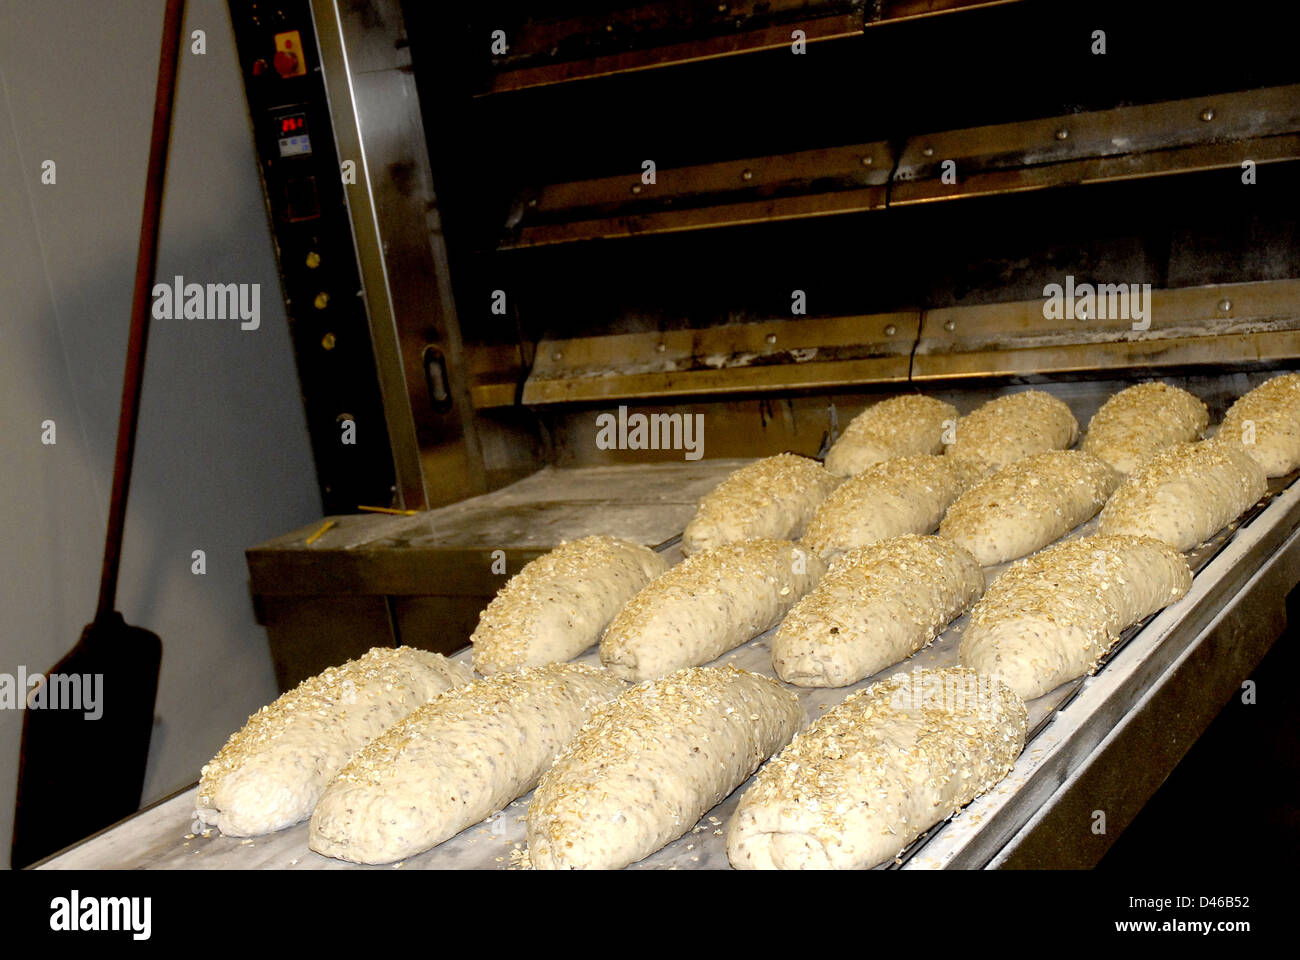 elaboration of artisan bread in the bakery - Stock Image